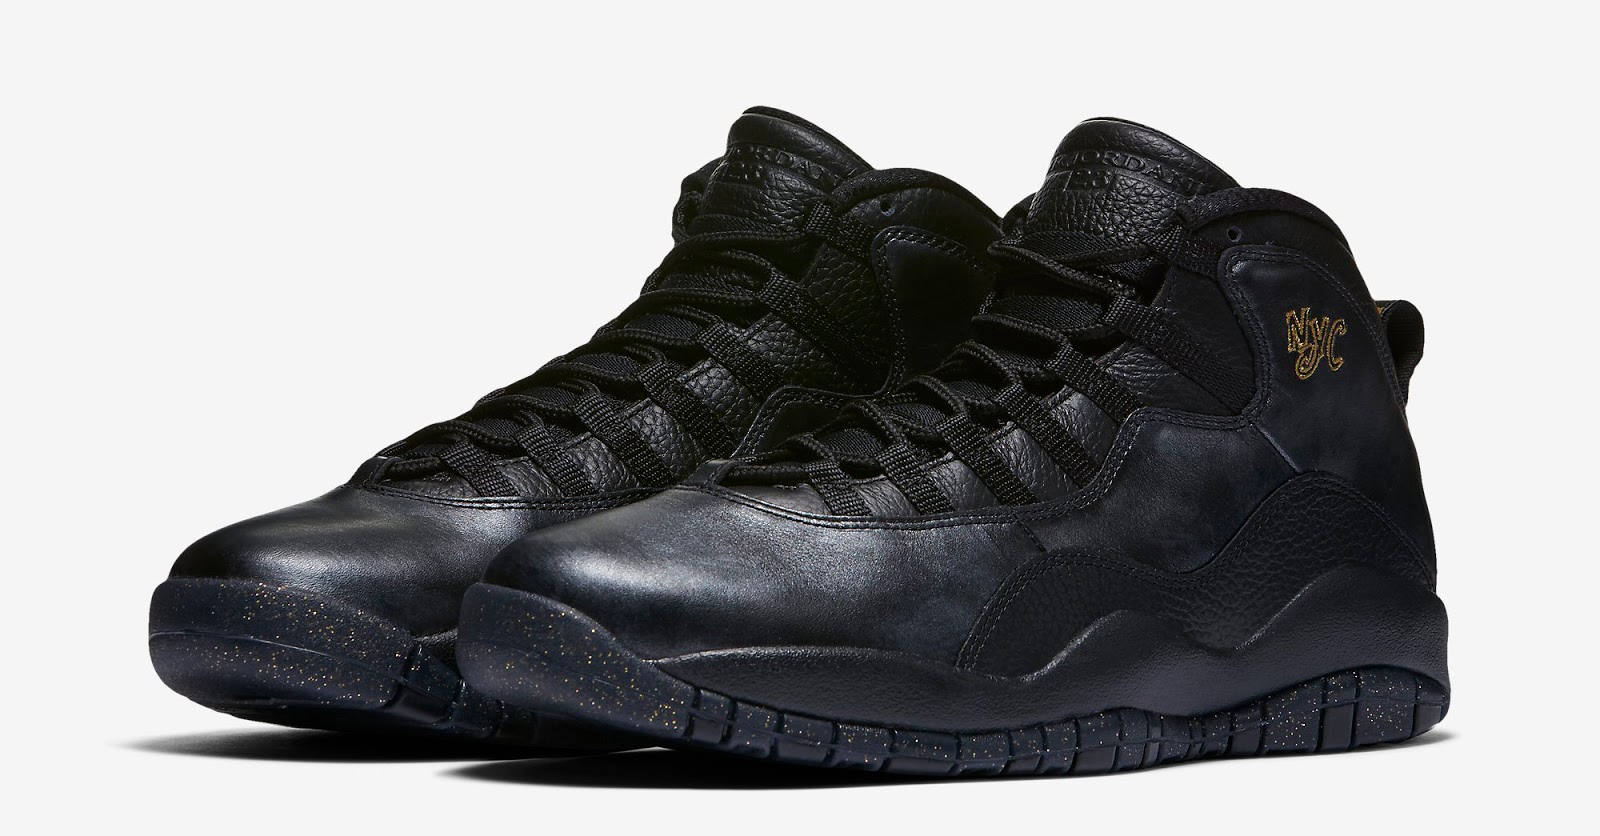 71bc8f008741a8 ajordanxi Your  1 Source For Sneaker Release Dates  Air Jordan 10 Retro